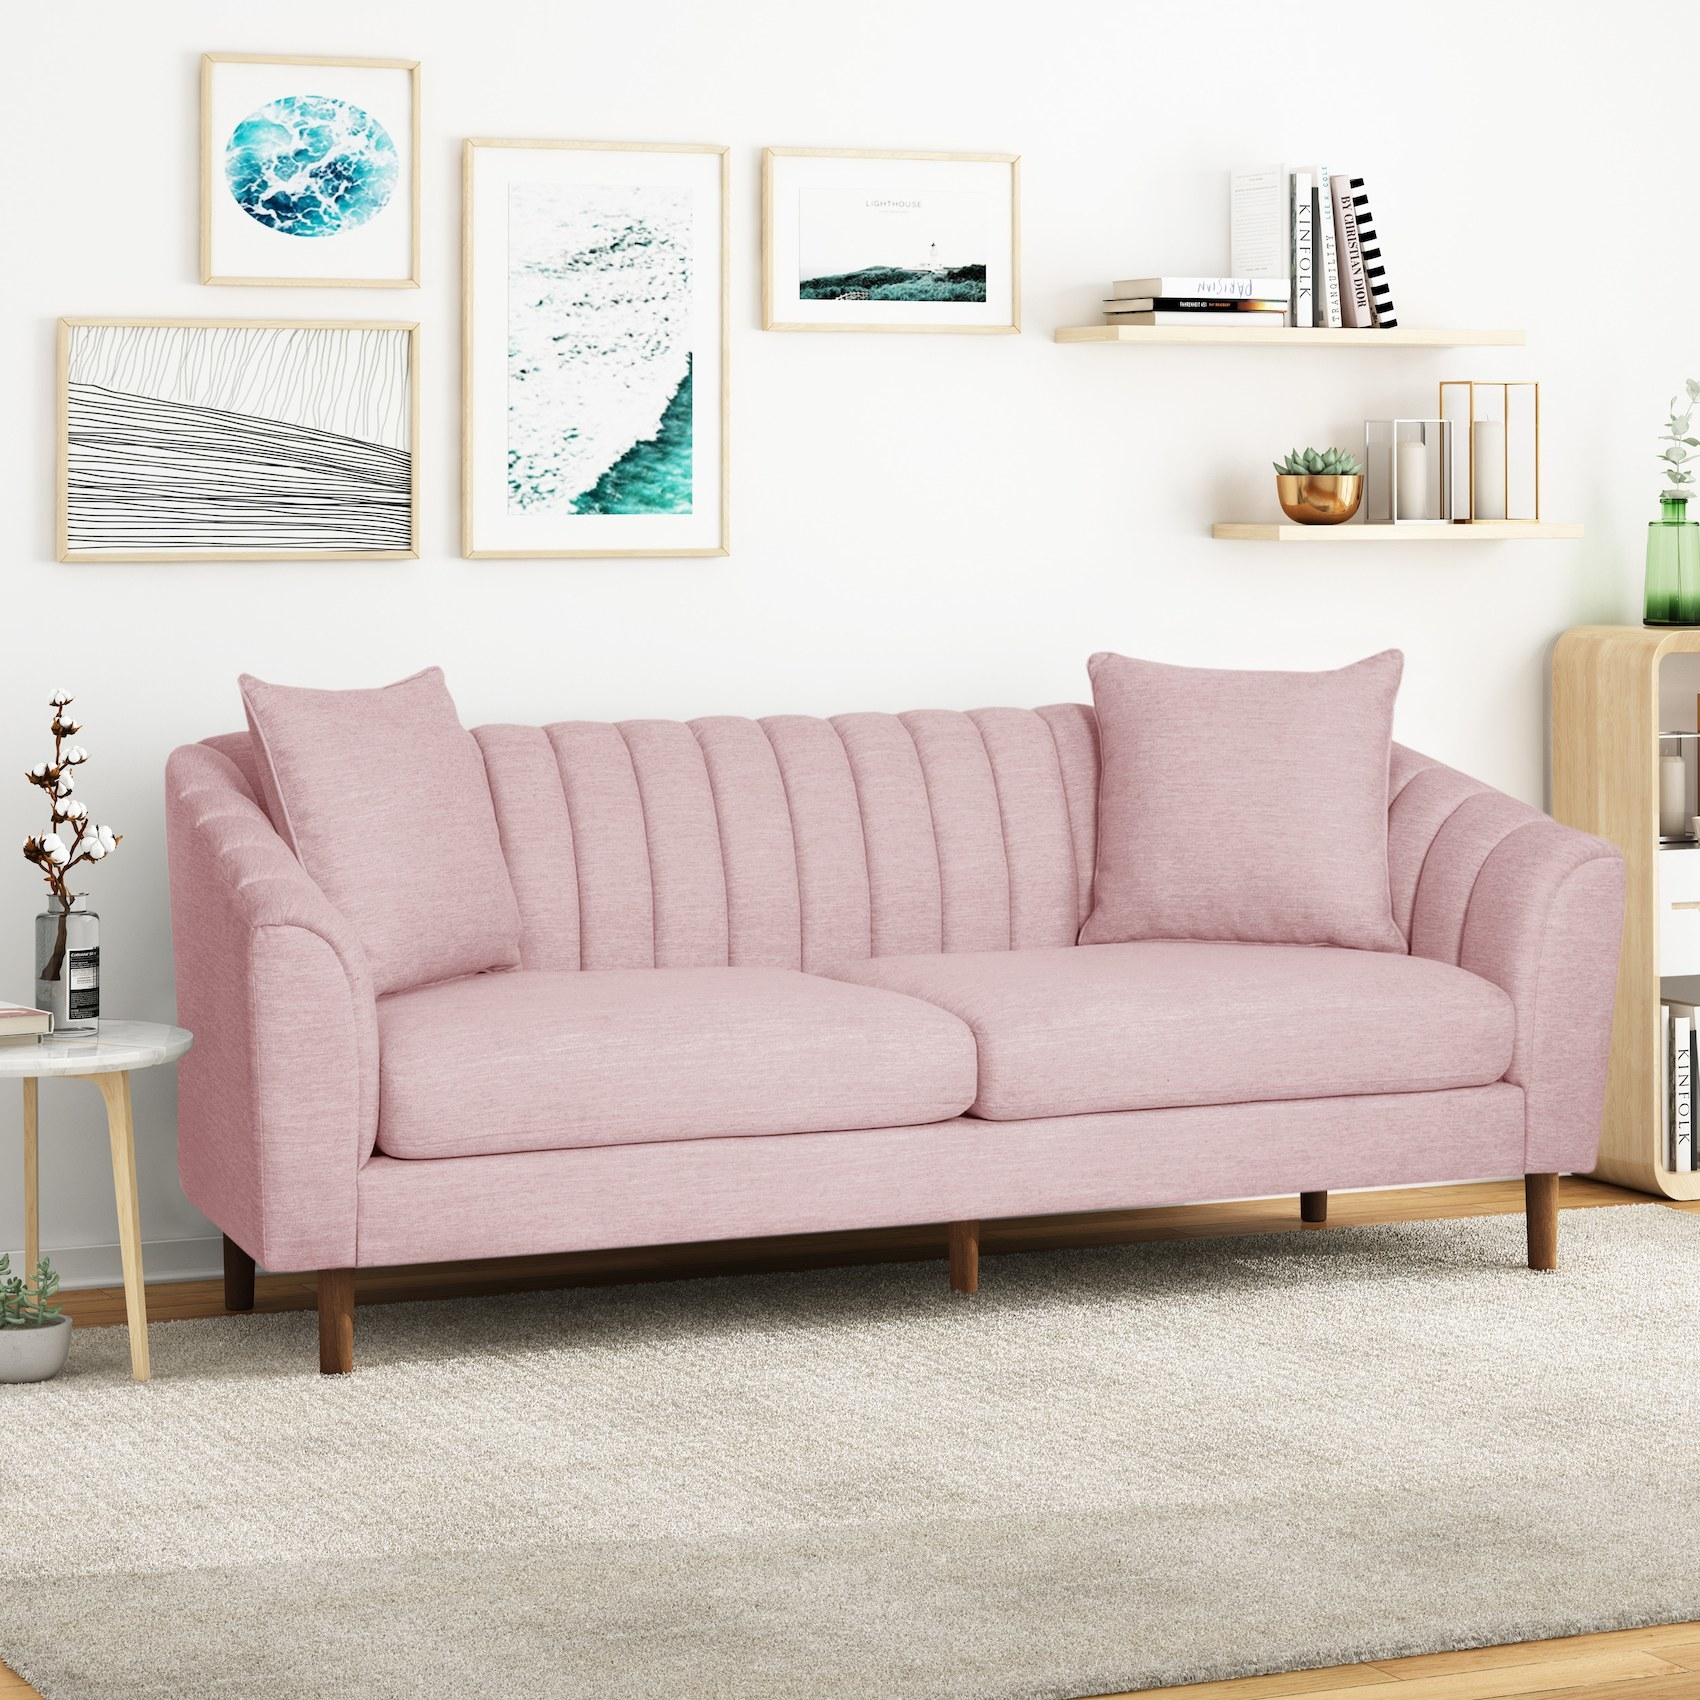 The pink couch with, vertical channel stitching on the back cushion, sloped arms, and two matching pillows